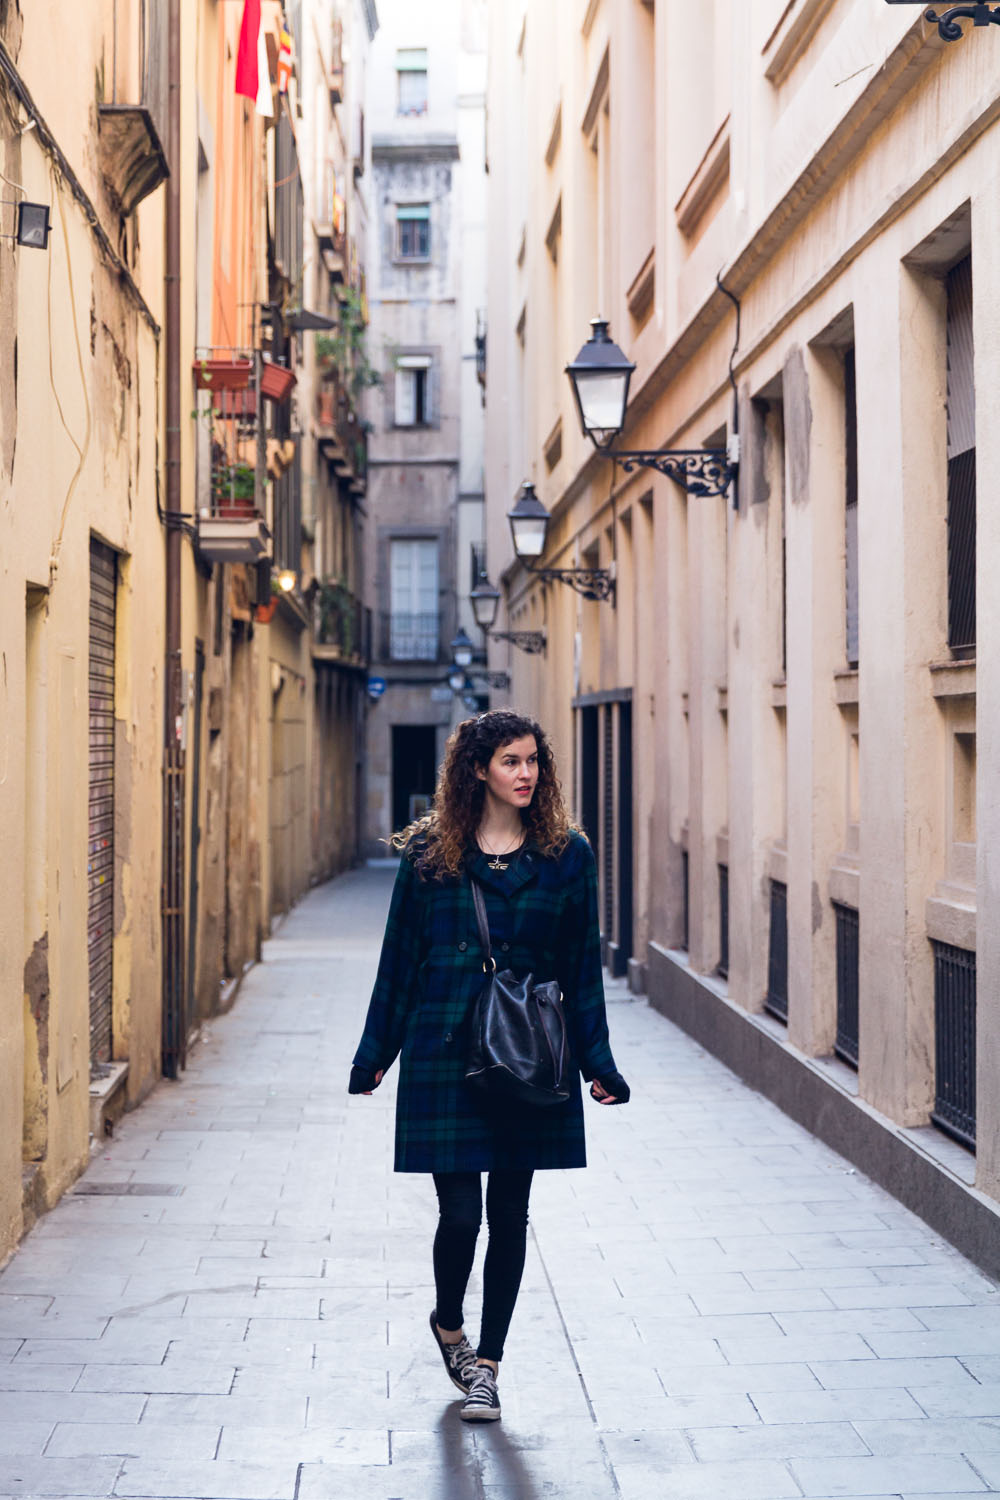 barcelona outfit 2 (1 of 8)